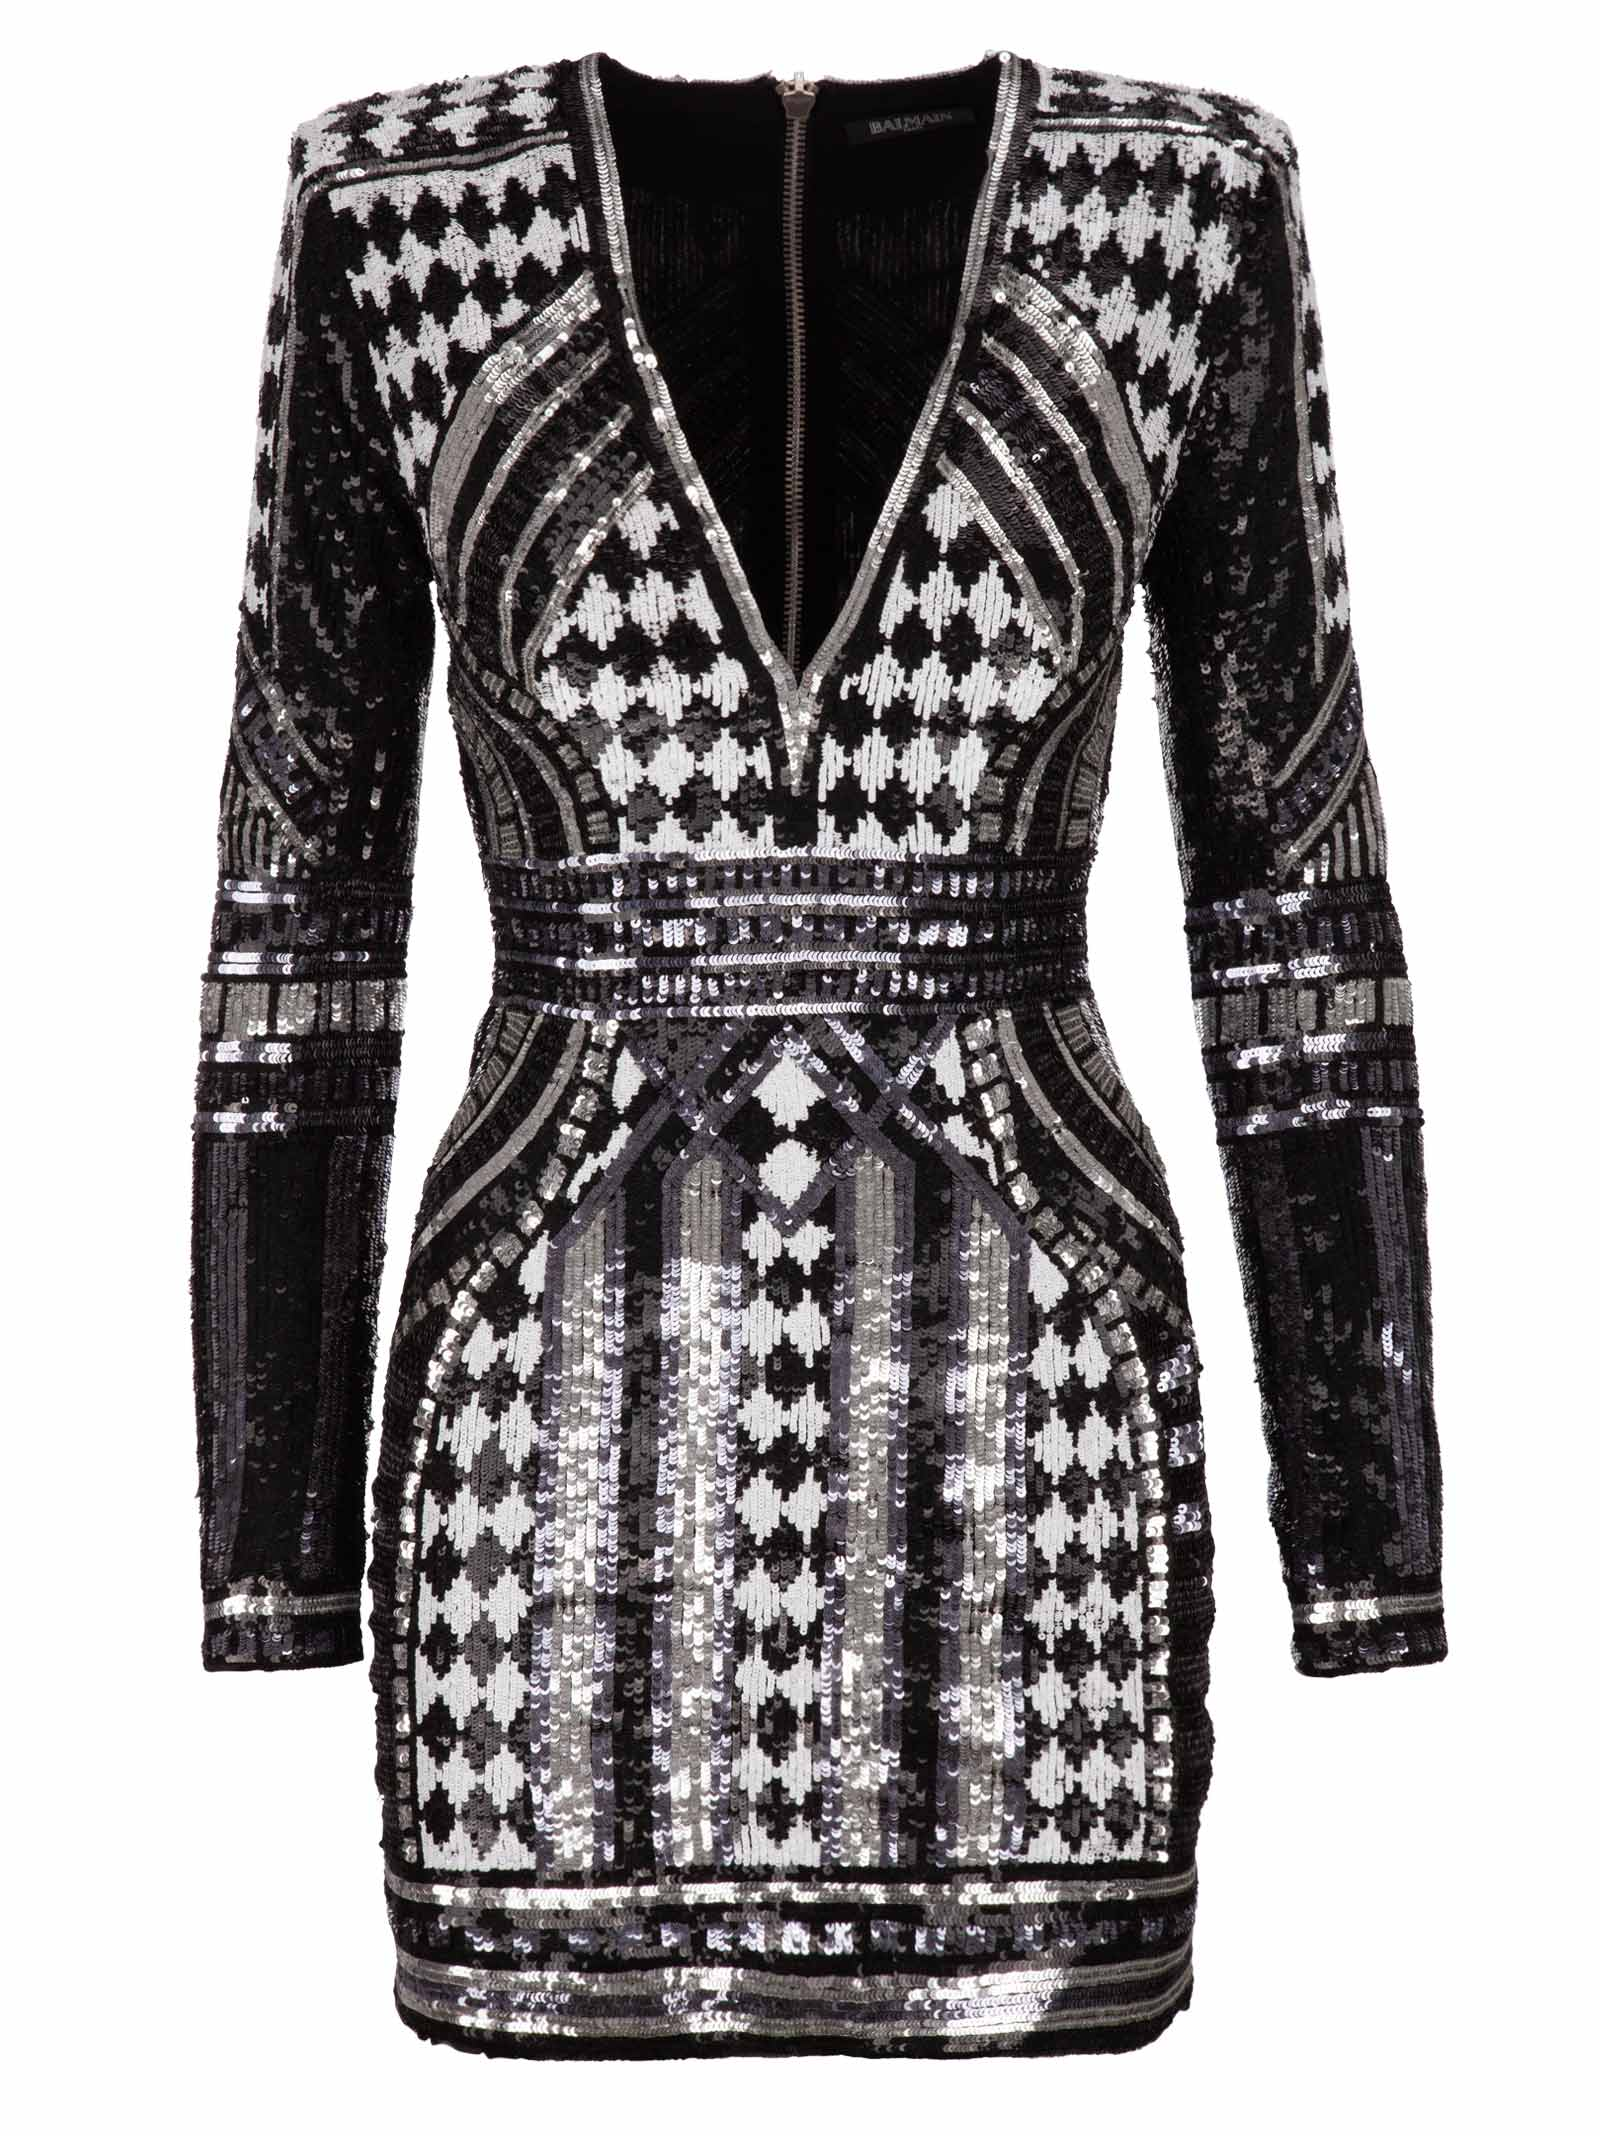 5b41cc43 Balmain Balmain Paris Dress - Black - 10820862 | italist